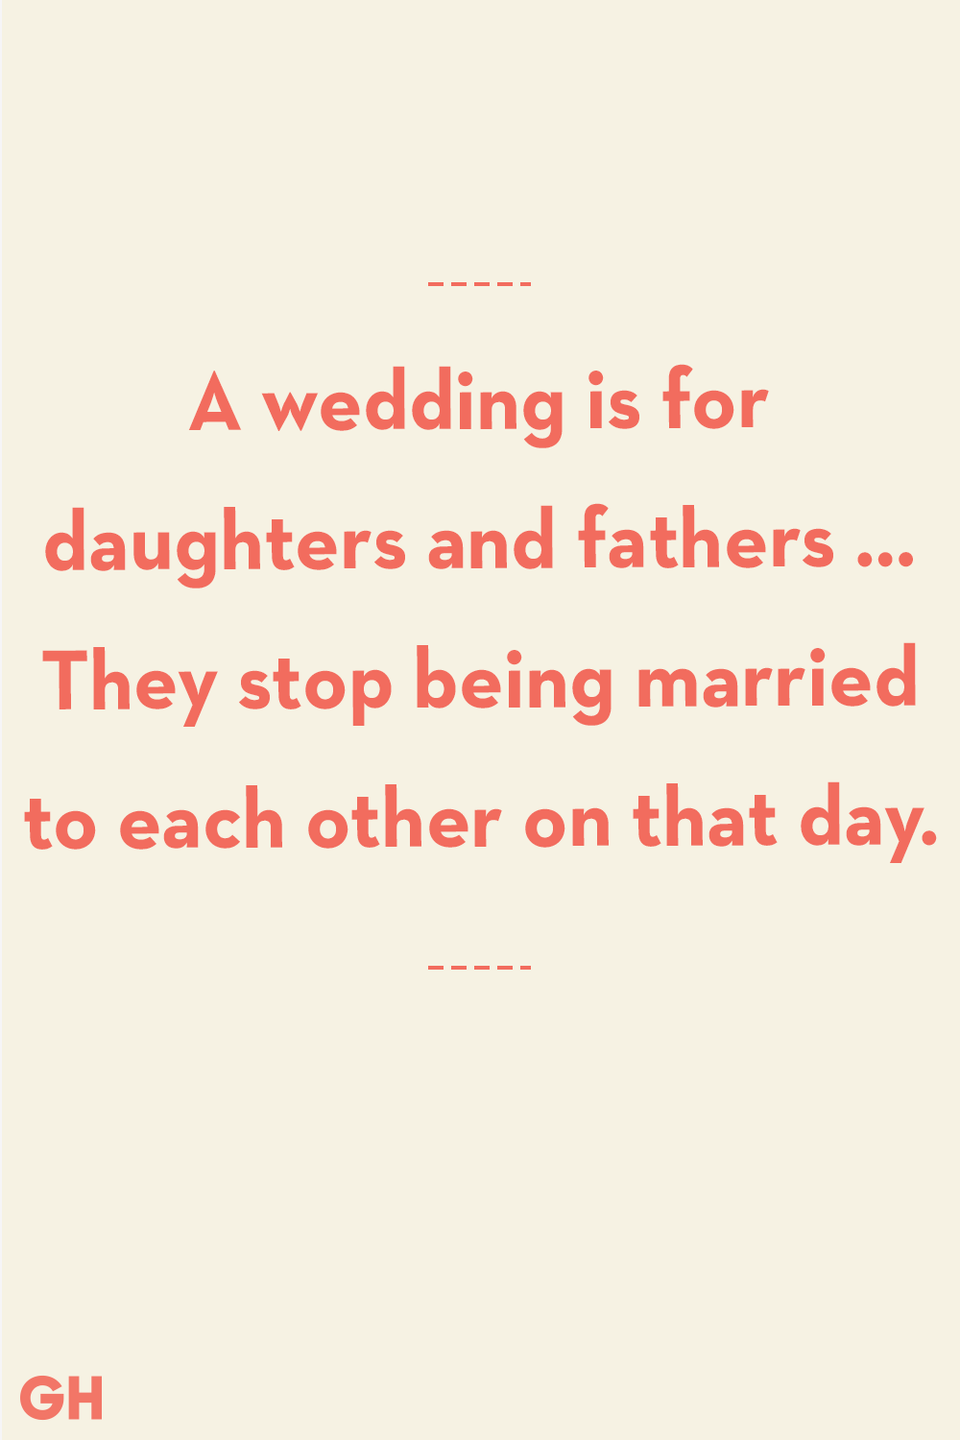 <p>A wedding is for daughters and fathers … They stop being married to each other on that day.</p>